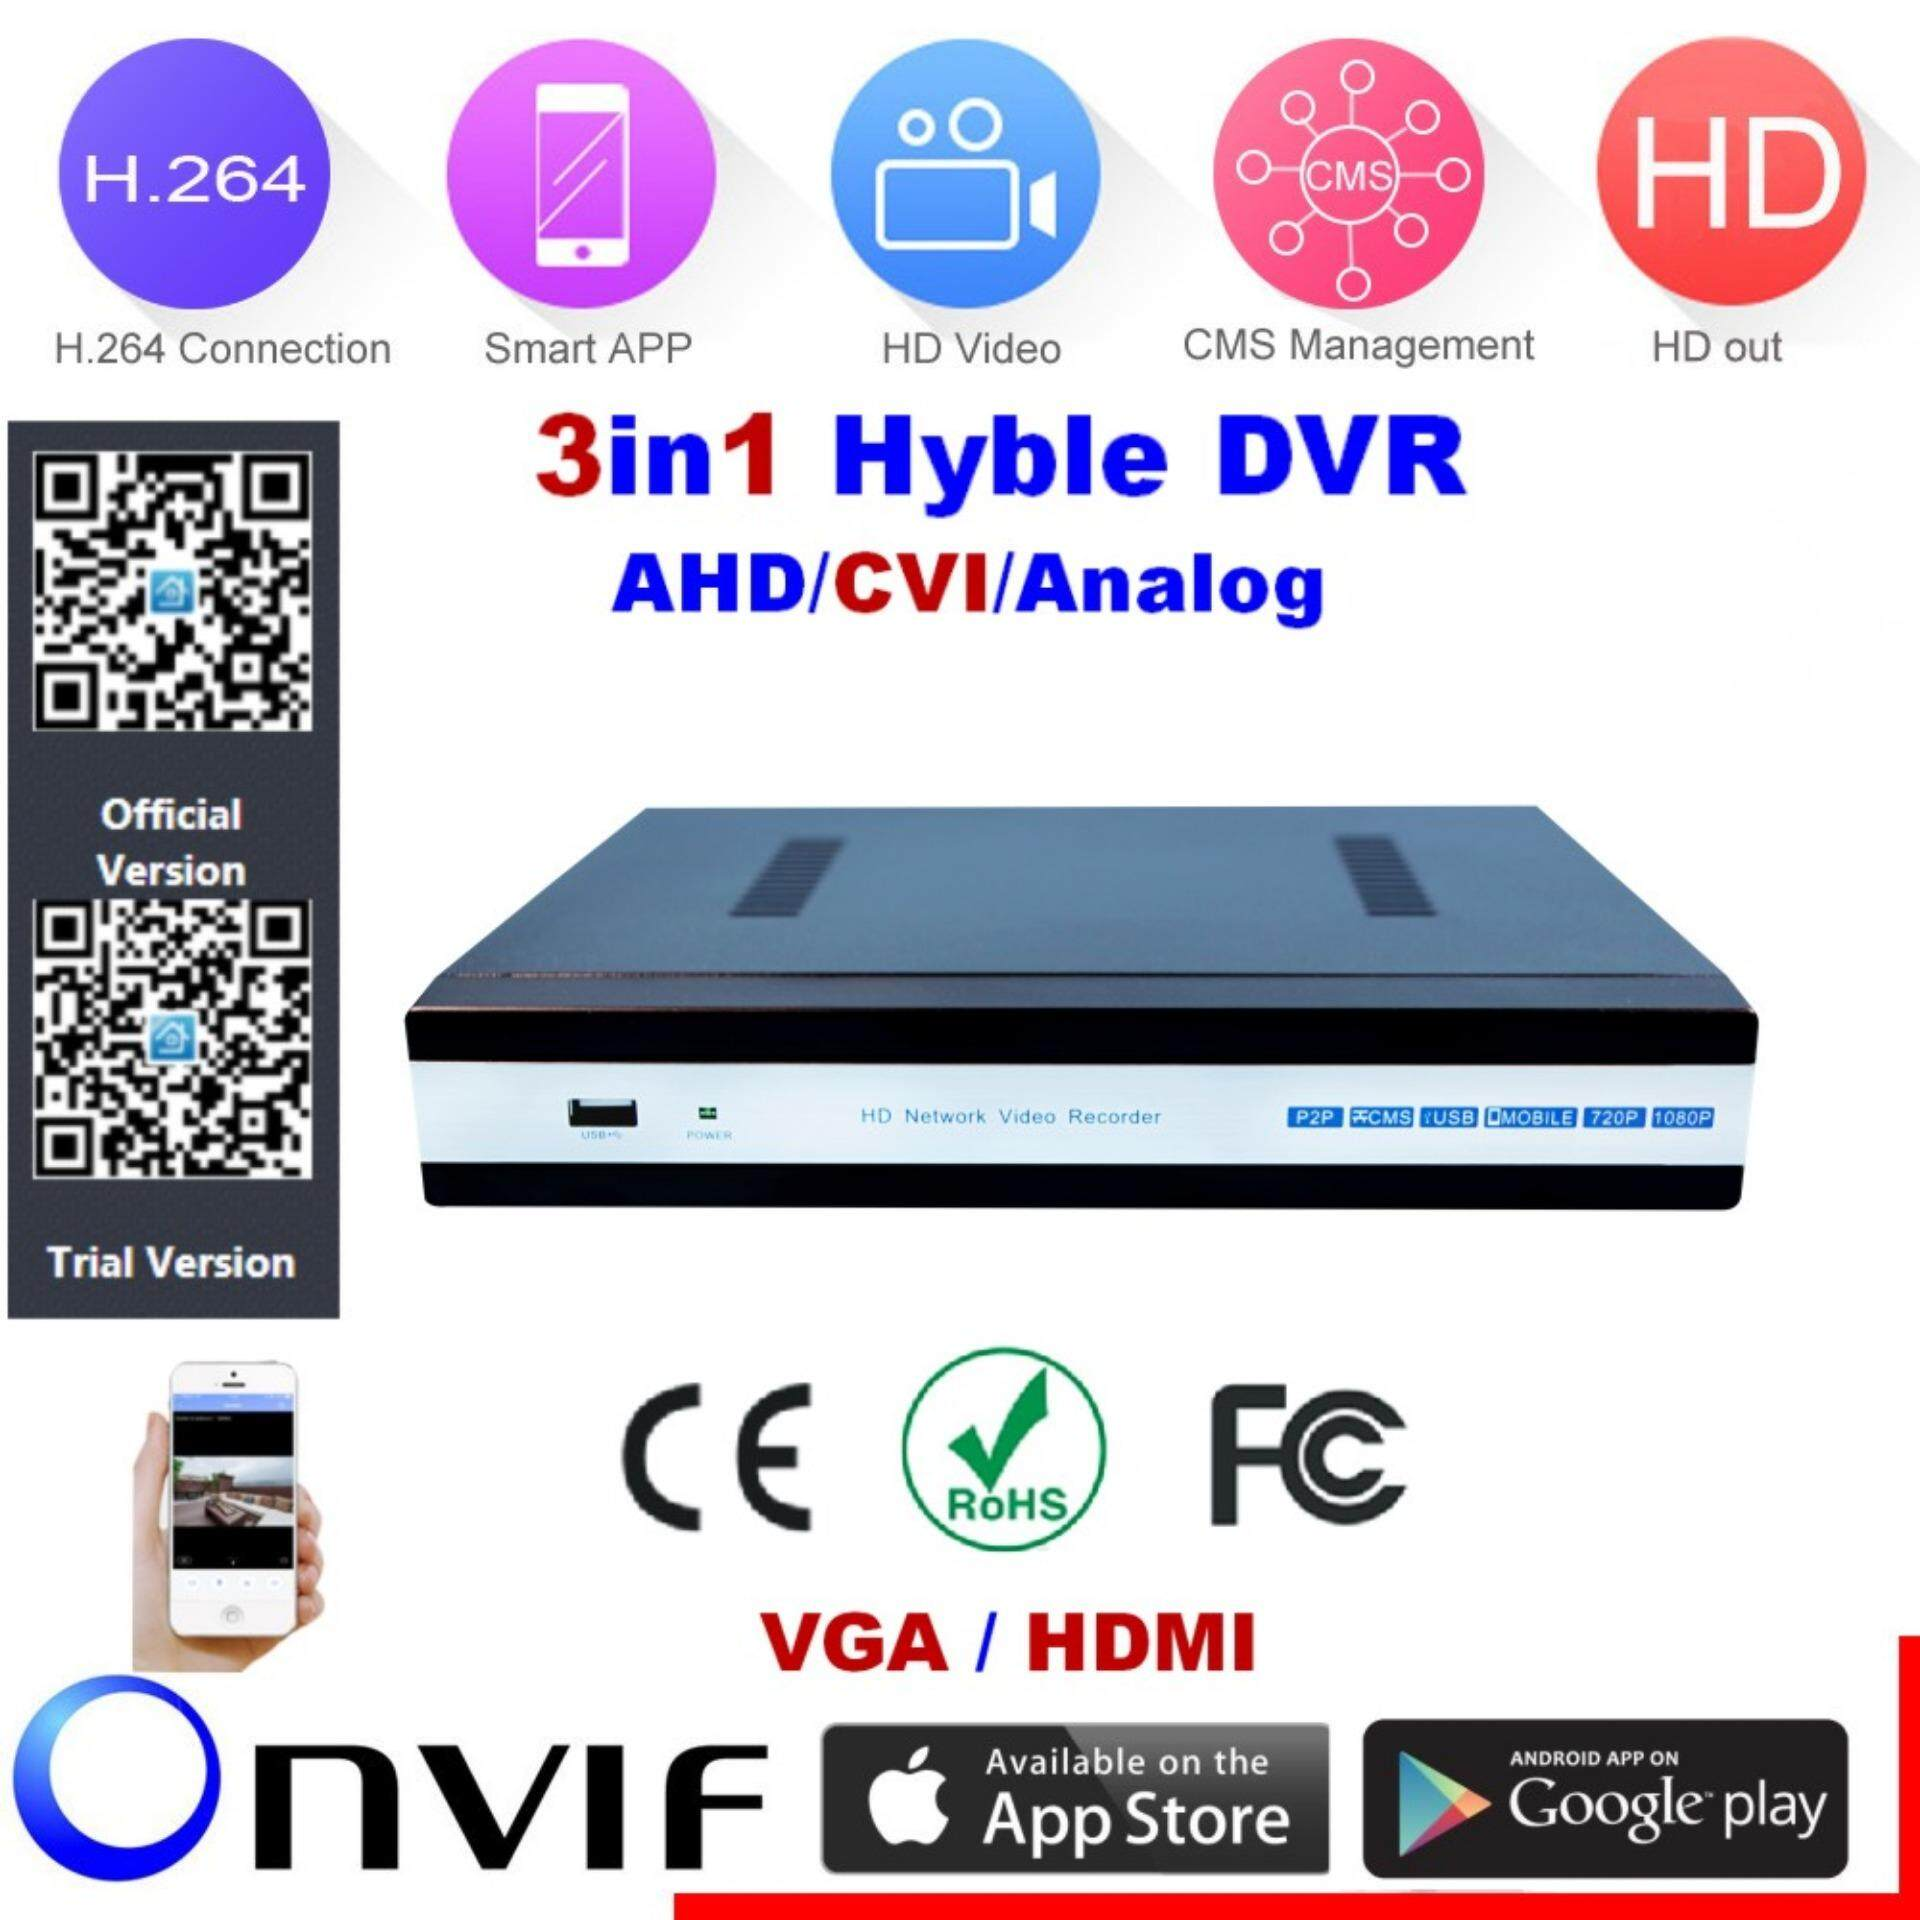 HanJia H 264 4Channel Full 1080N@25fps 3in1 Hybrid DVR NVR(AHD/Analog/IP)  HDMI/VGA P2P Cloud support 1 hard disk interface Android/iOS APP Free CMS